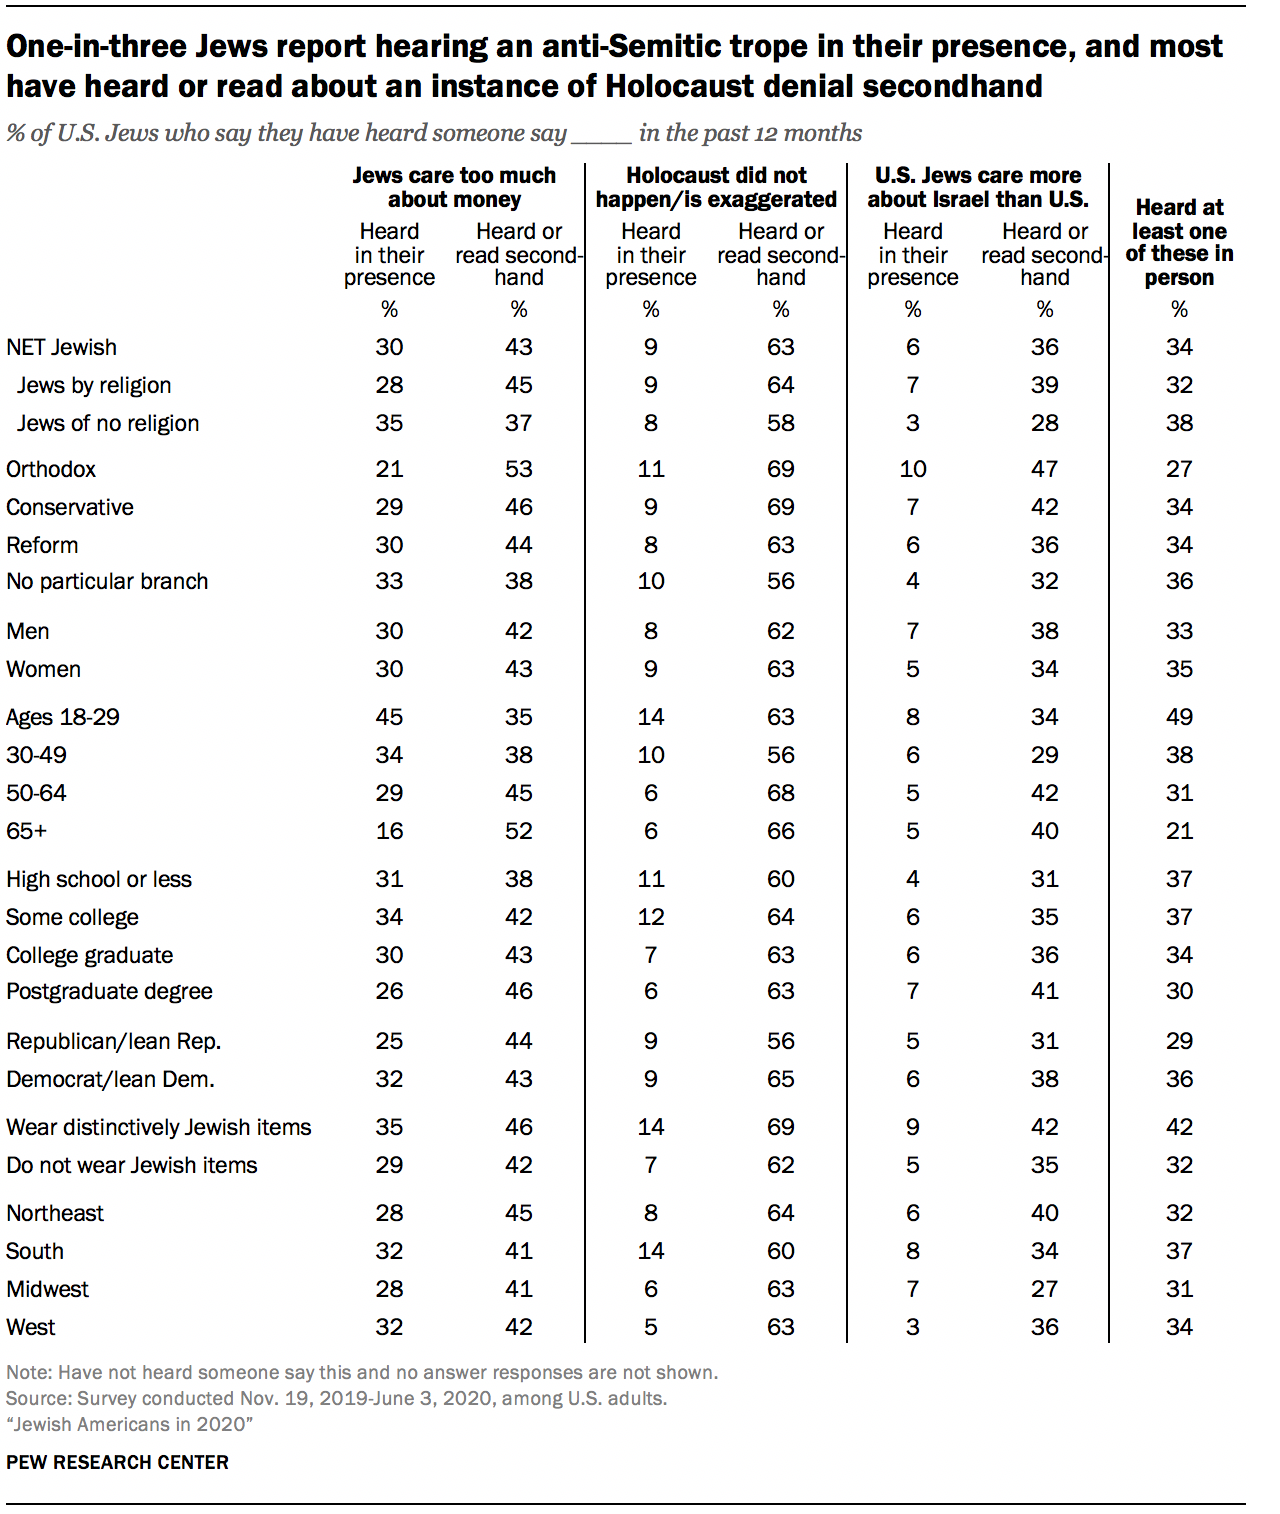 One-in-three Jews report hearing an anti-Semitic trope in their presence, and most have heard or read about an instance of Holocaust denial secondhand